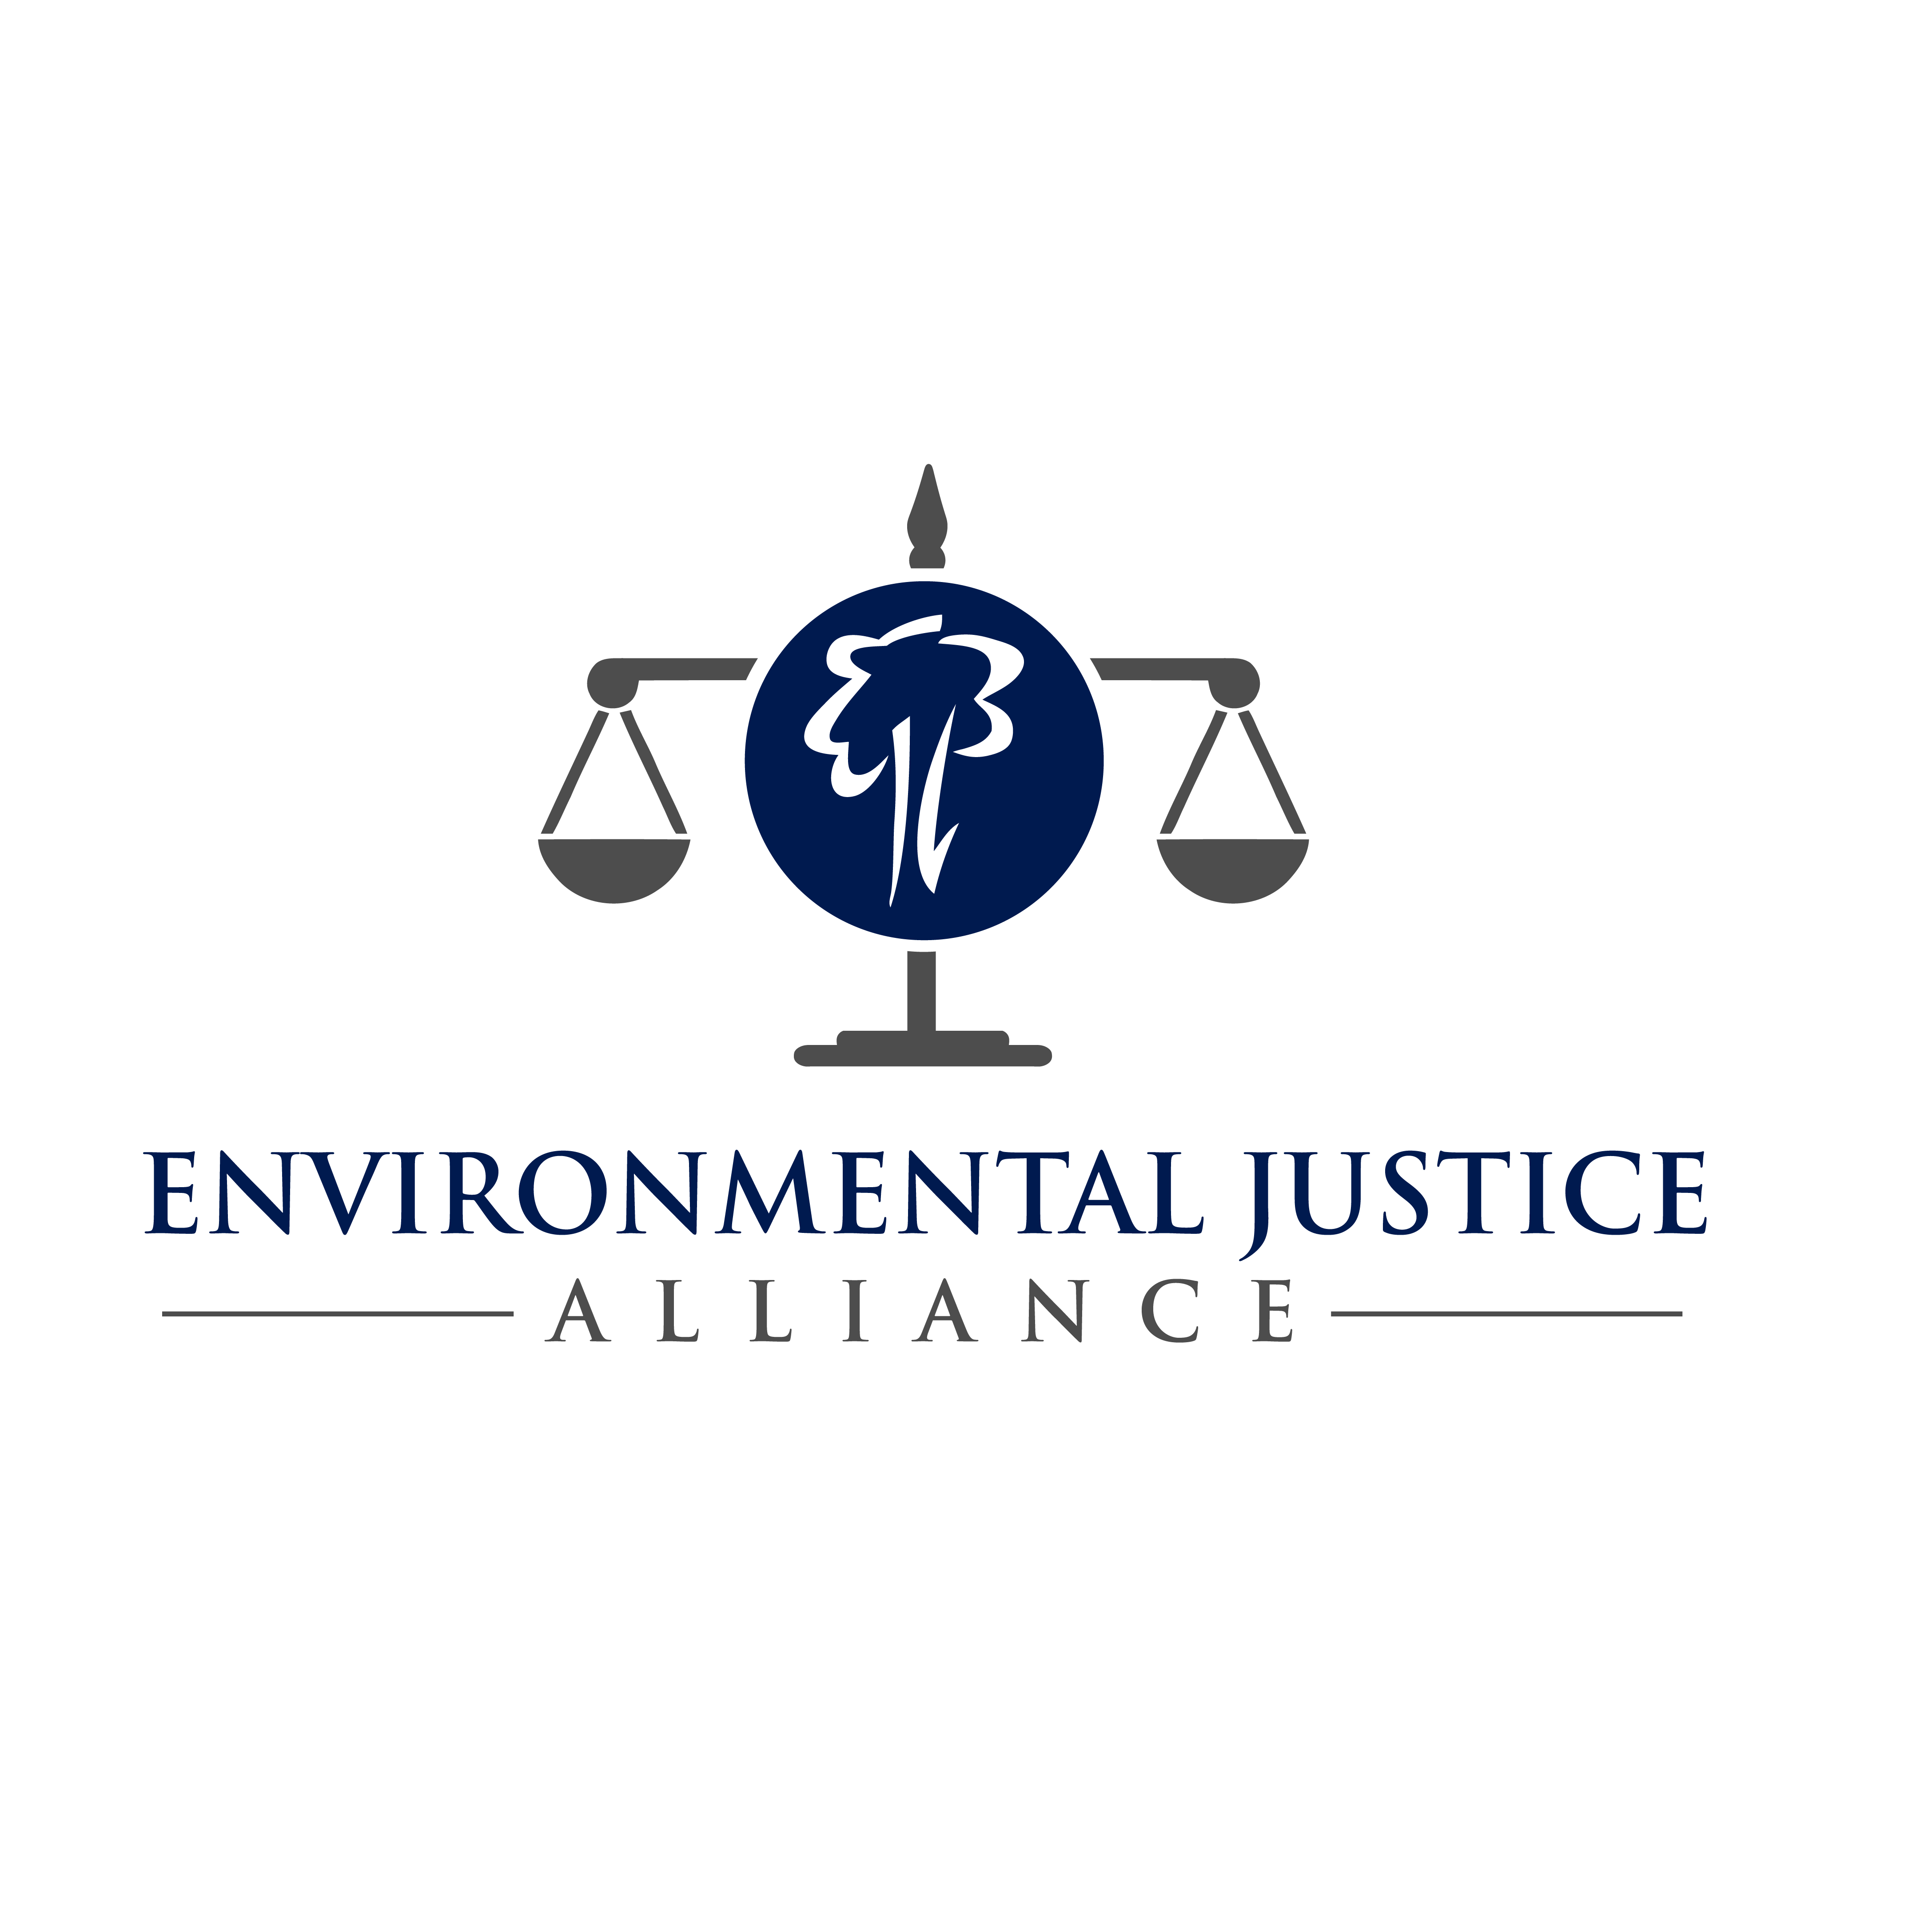 Environmental Justice Alliance